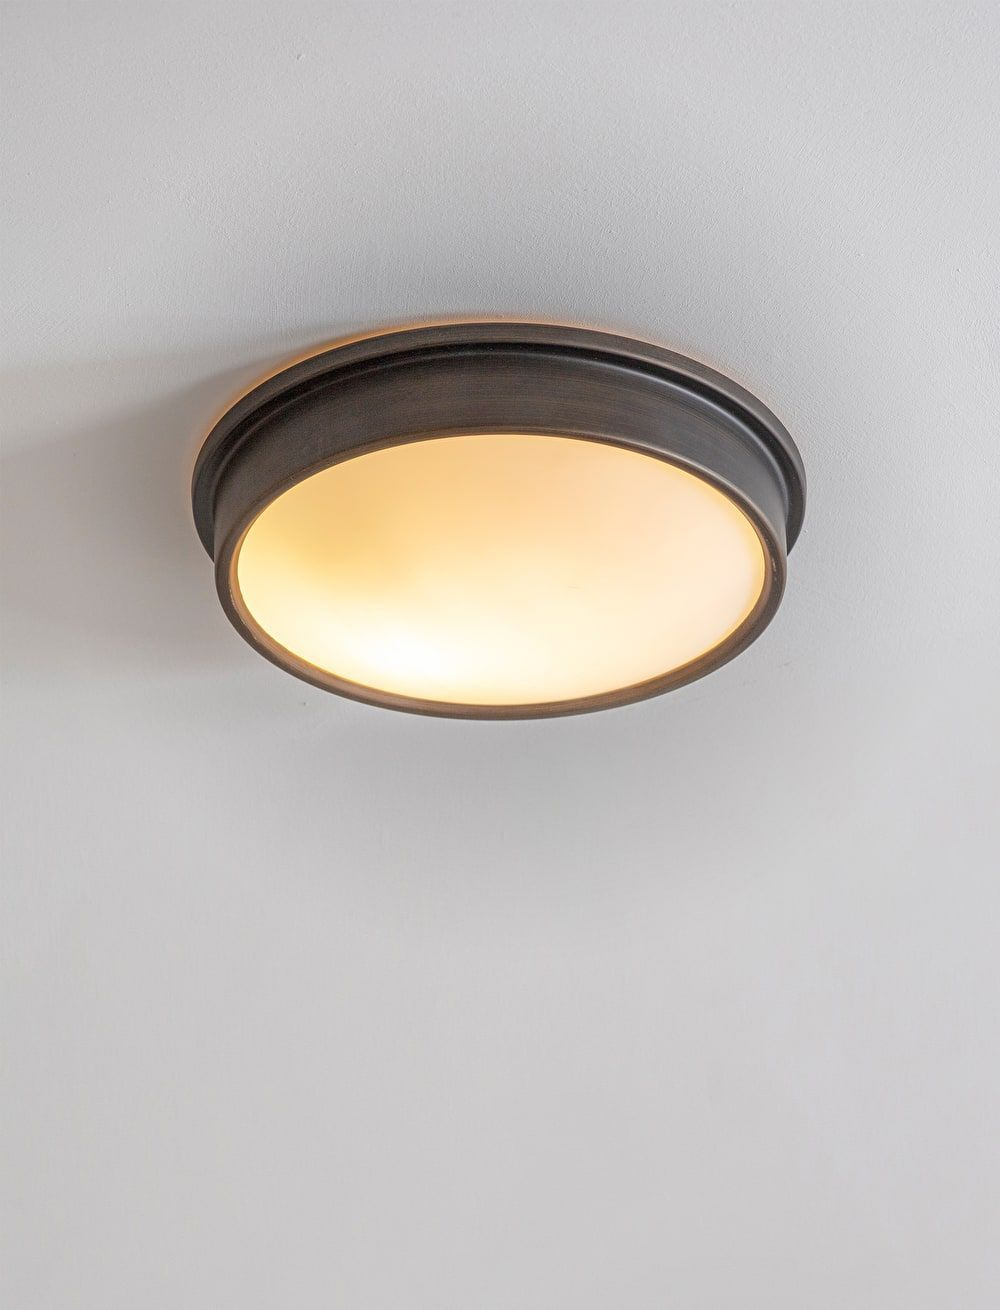 Add A Touch Of Simplicity To Your Bathroom Or Wc With The Ladbroke Ceiling Light C Bathroom Bathroom Lighting Bathroom Ceiling Light Ceiling Lights